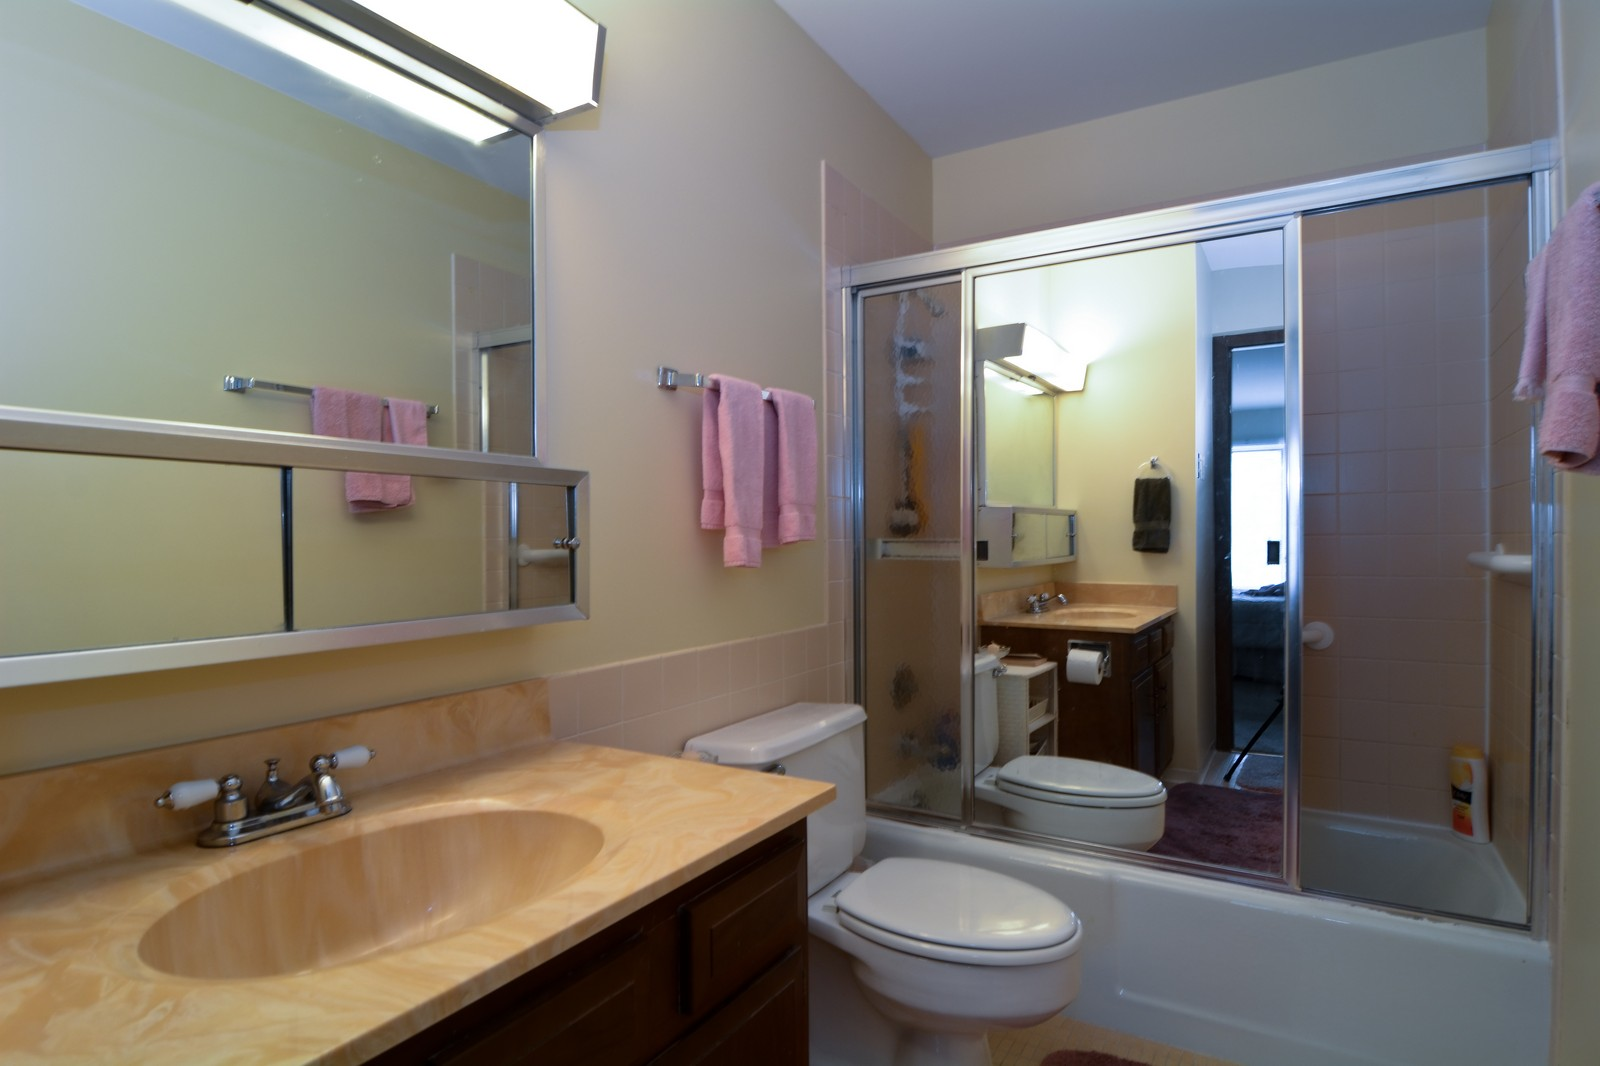 Real Estate Photography - 6545 S Main St, Downers Grove, IL, 60516 - Master Bathroom